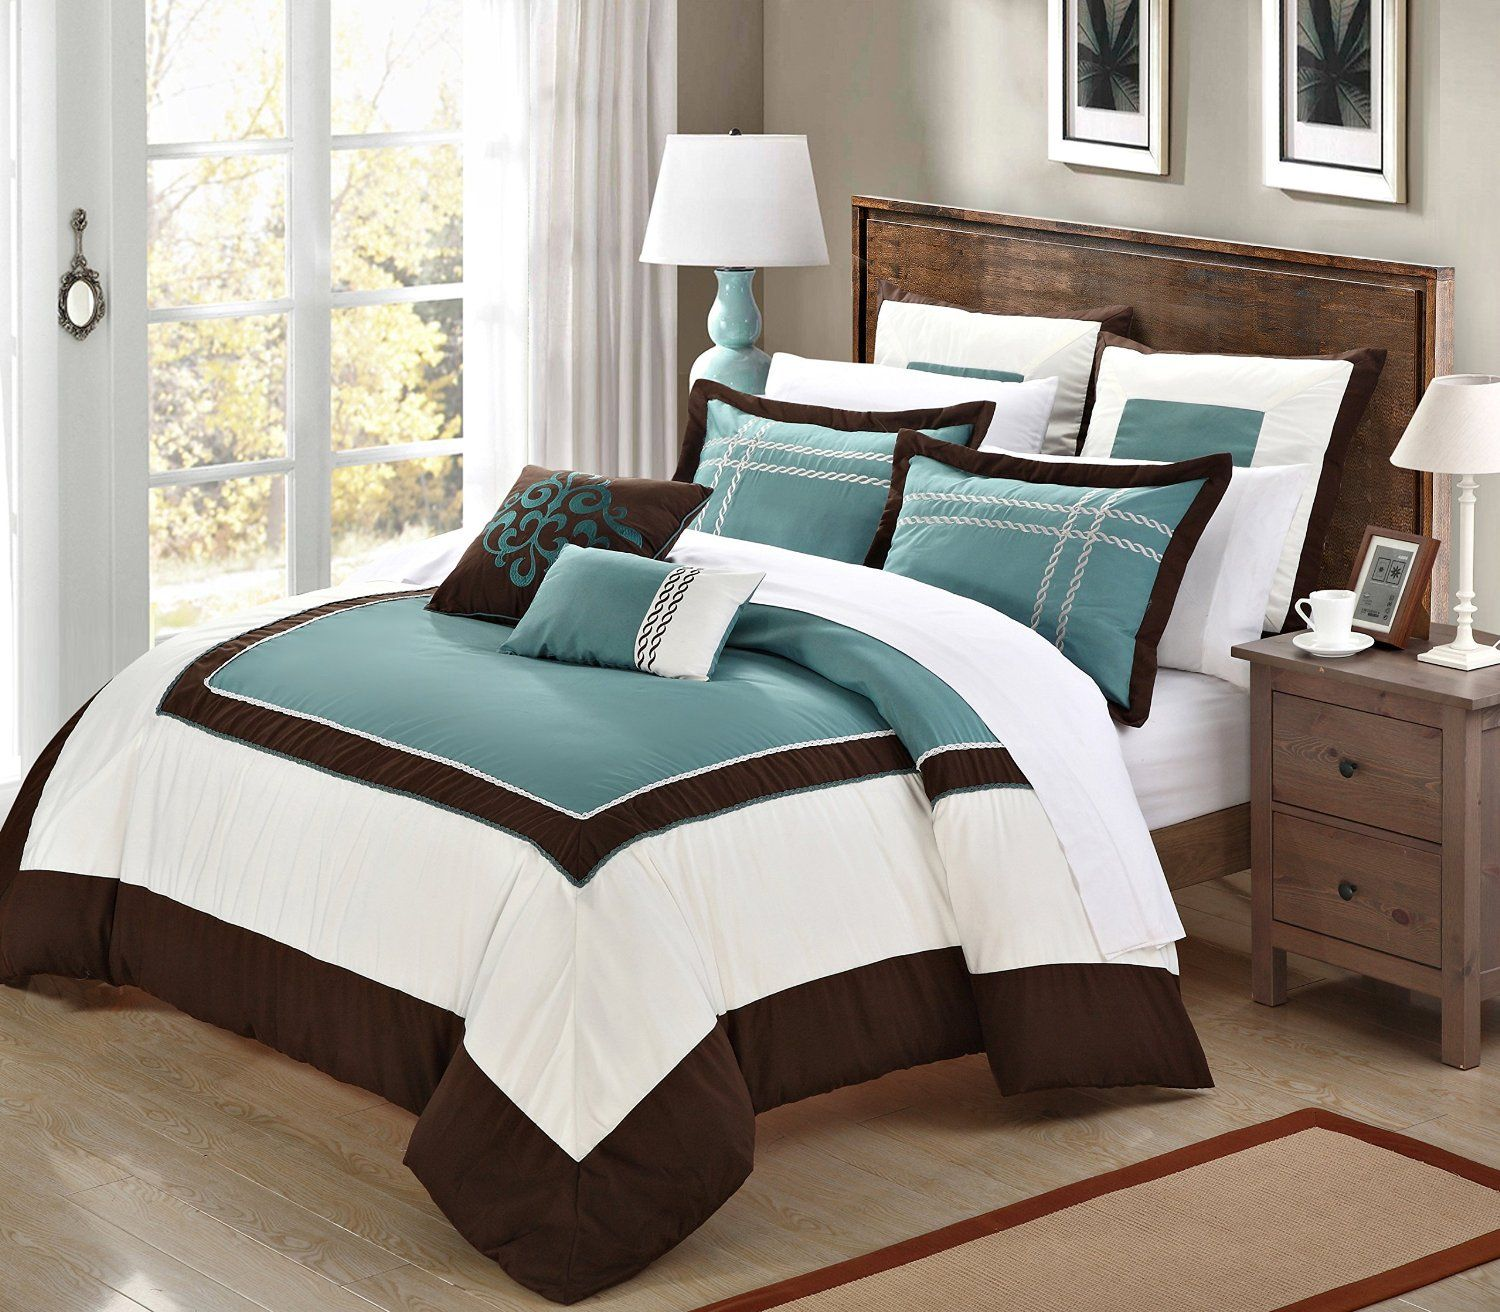 Bedding sets turquoise - King Bedding Sets Green Grey Sale 8pc King Size Blue Gray Pintucked Comforter Set Ebay Future Home Pinterest Bedding Sets Grey And Comforter Sets